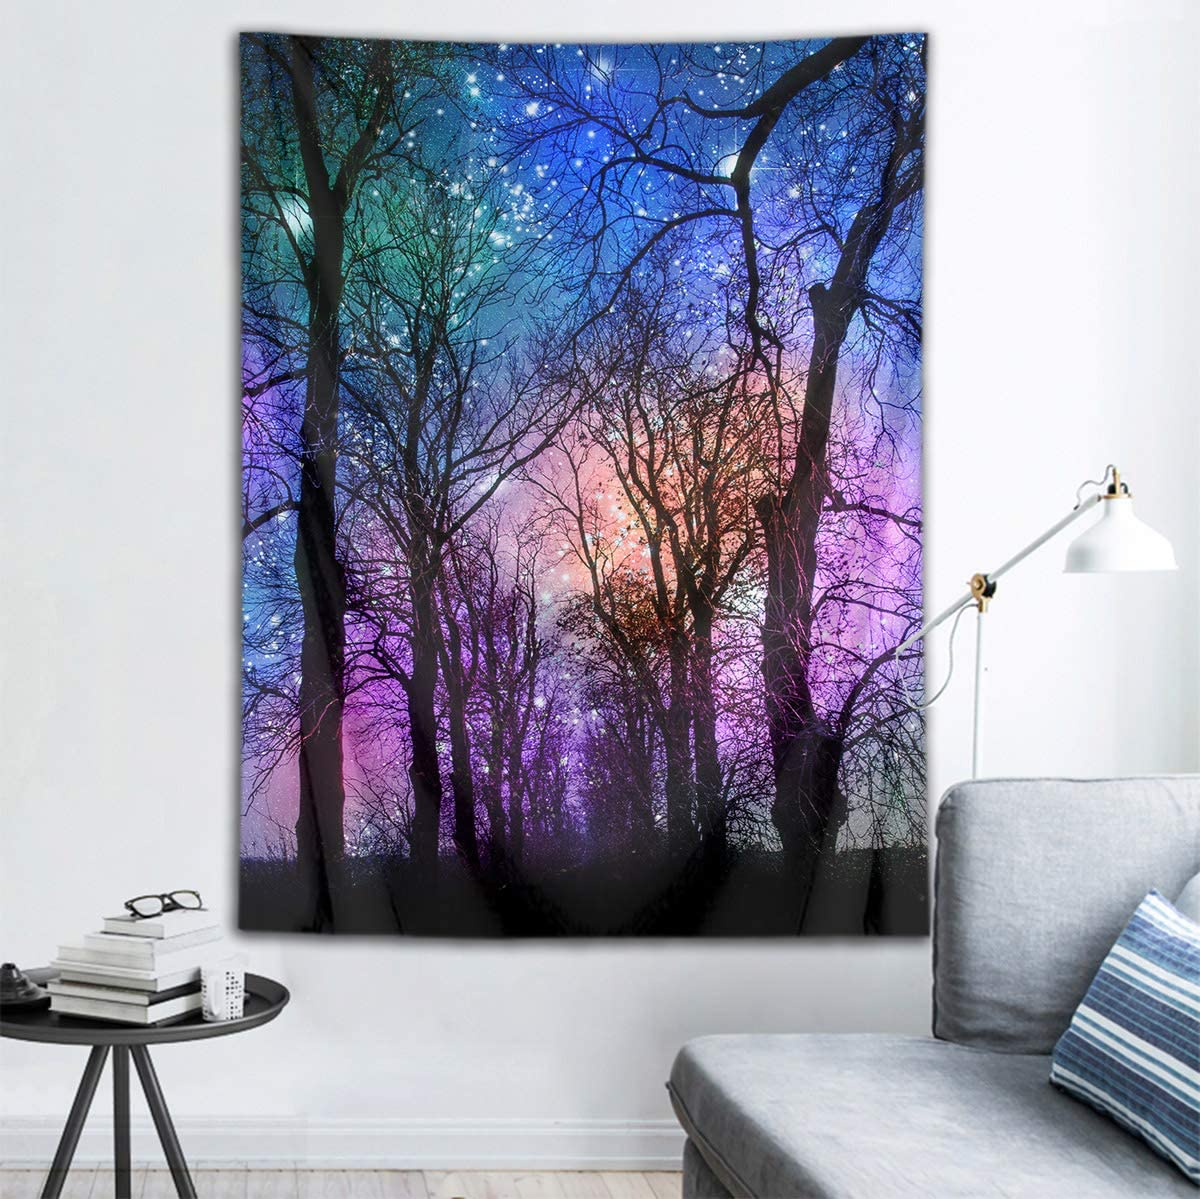 HVEST Psychedelic Forest Tapestry Wall Hanging Dreamlike Starry Sky Wall Tapestry Spring Night Scenery Tapestries for Bedroom Living Room Dorm Party Decor,40Wx60H inches